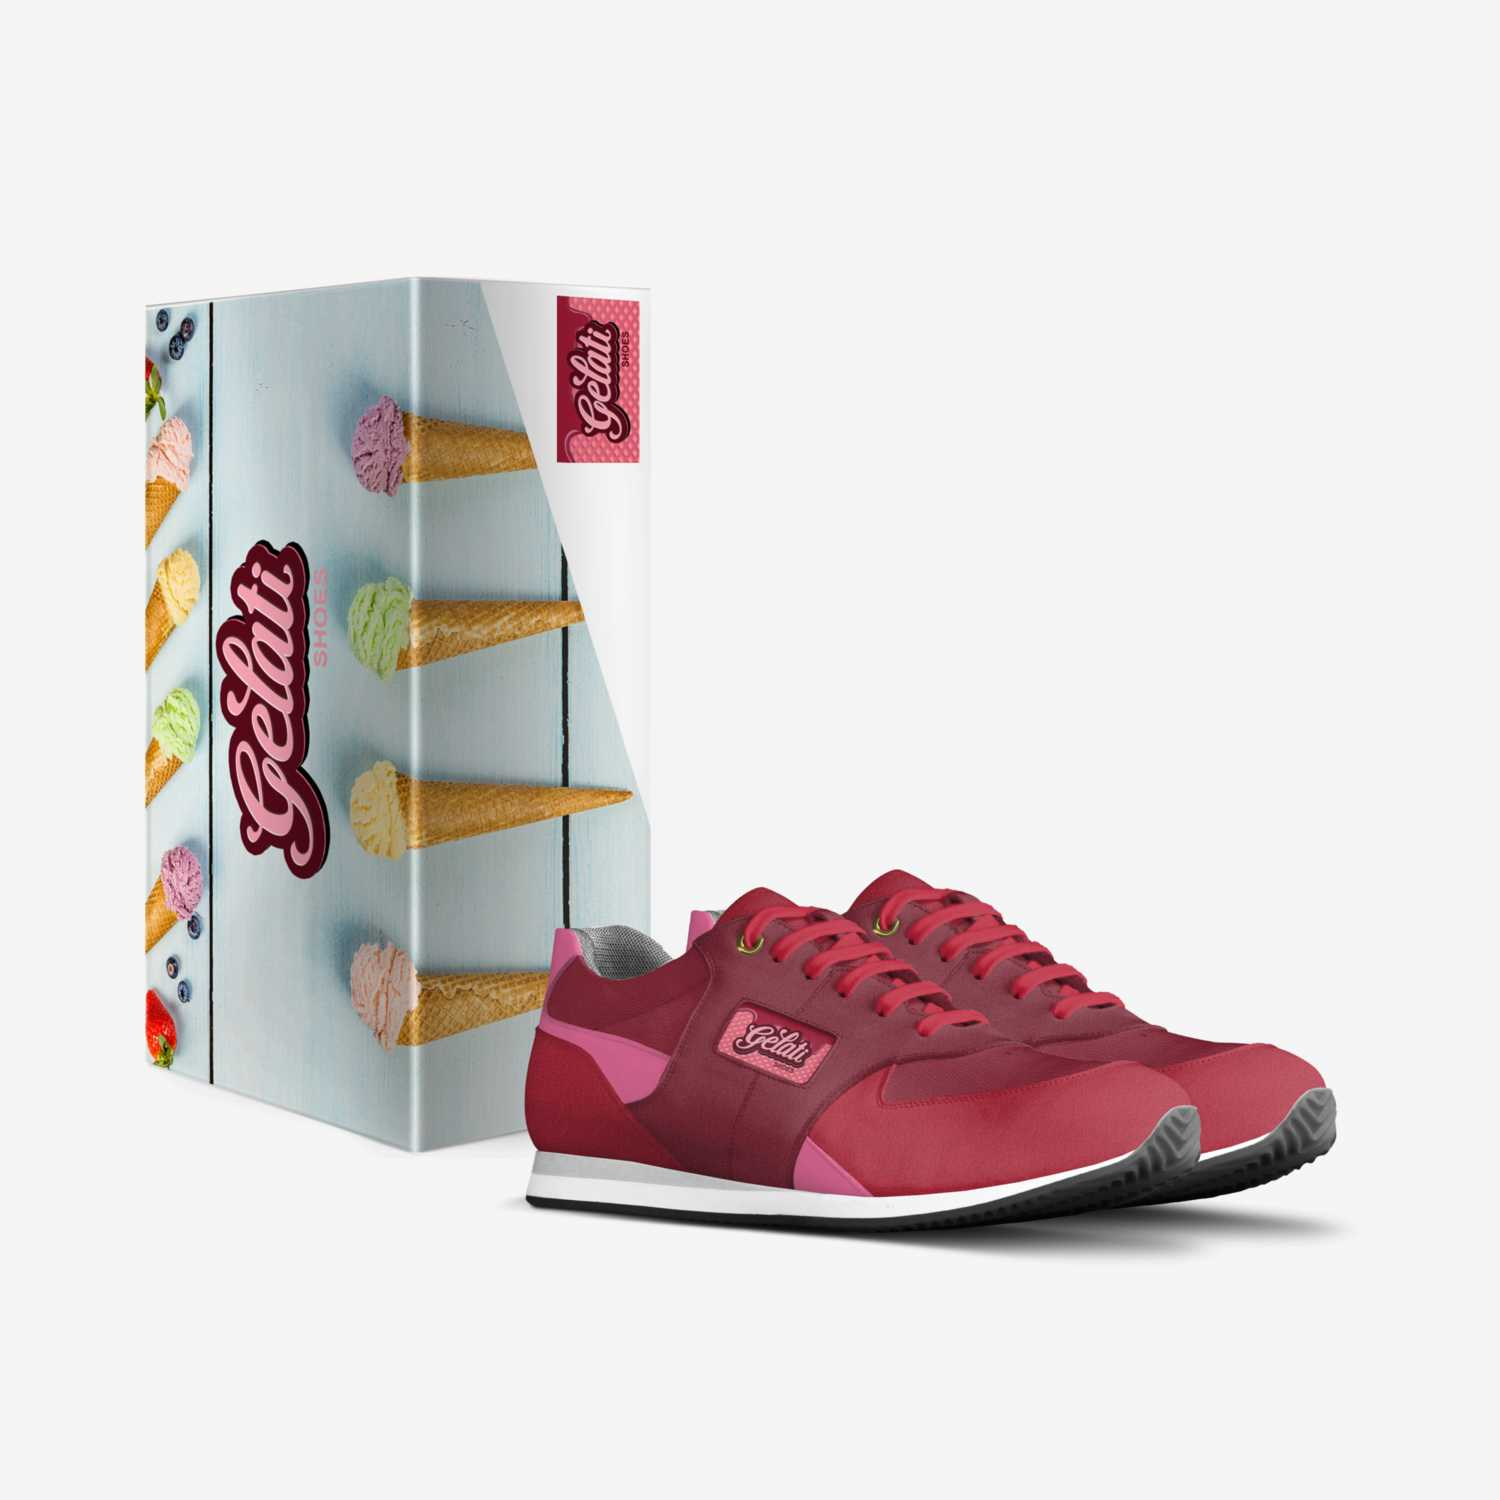 Strawberry Cream custom made in Italy shoes by Craig David | Box view